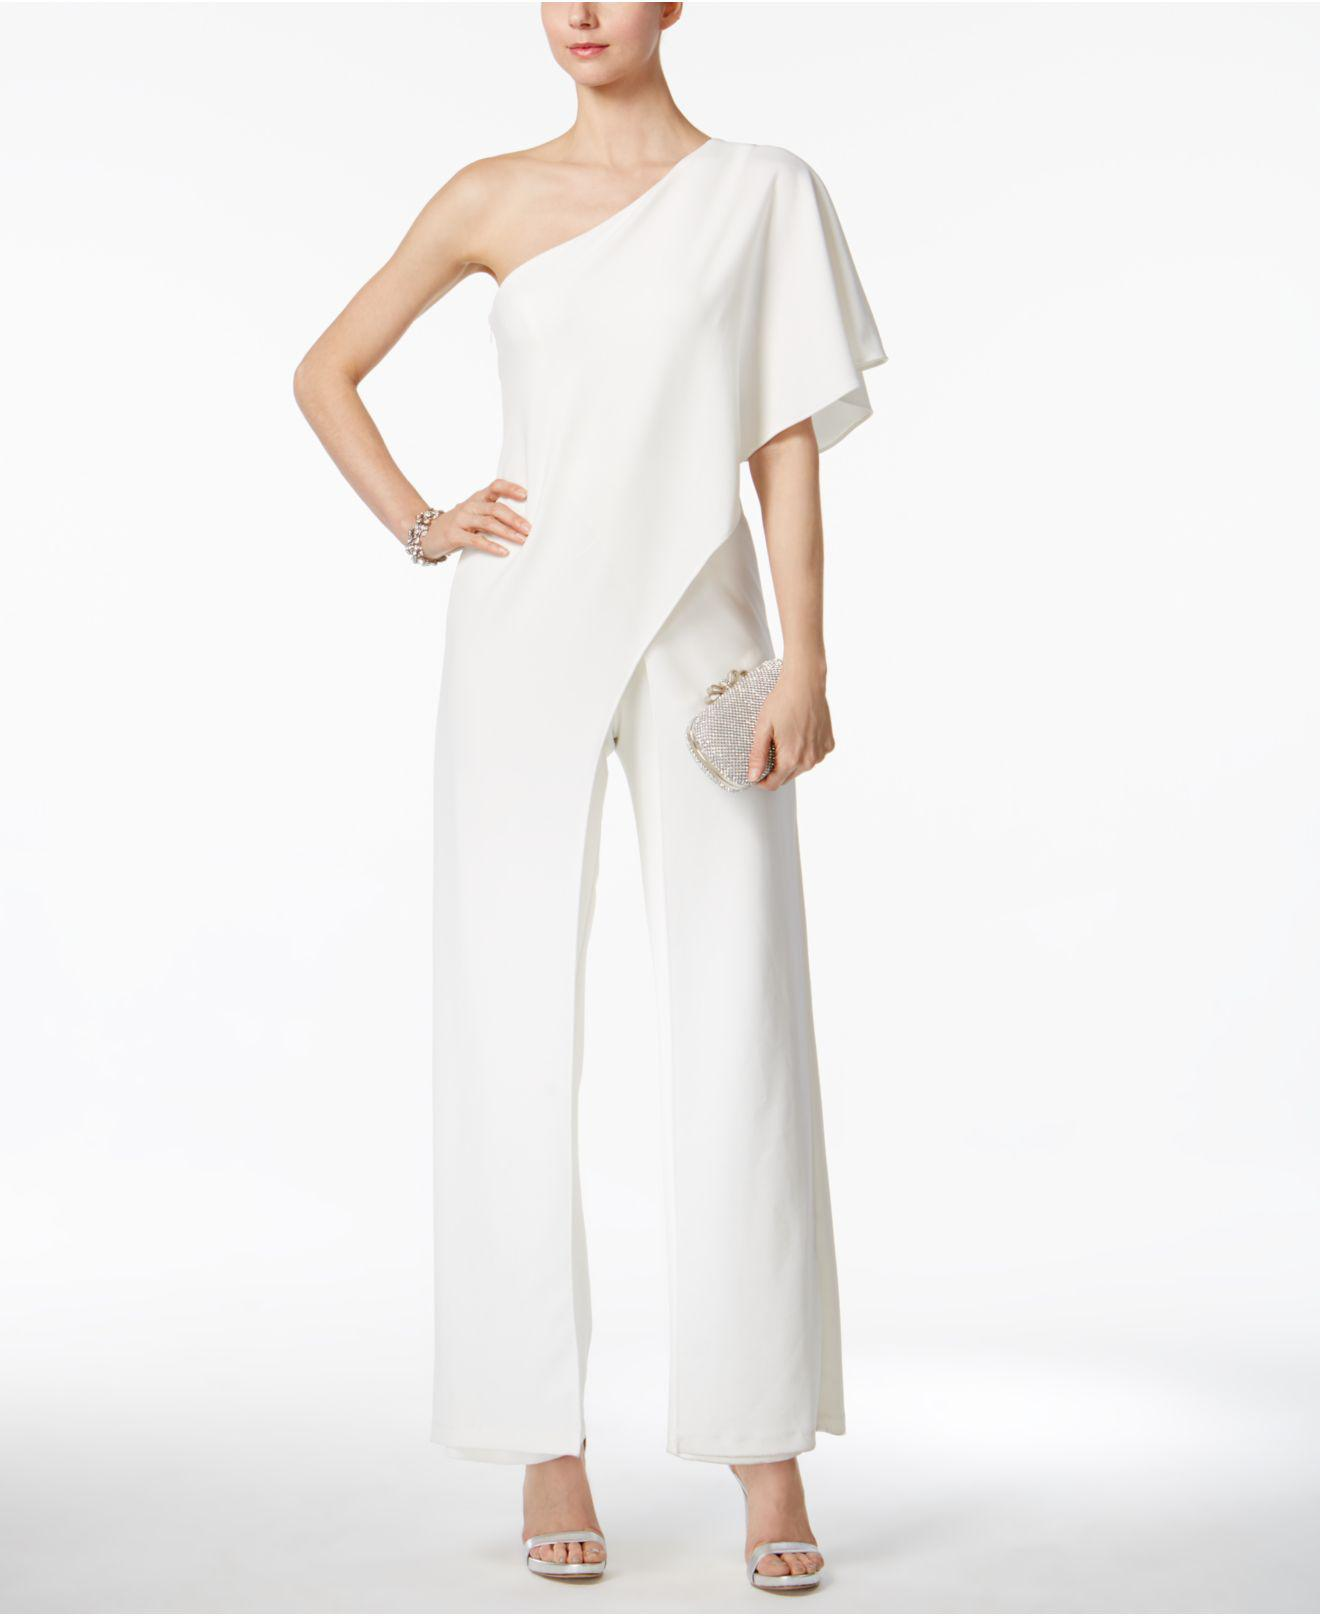 20d4bec0b0c Lyst - Adrianna Papell Petite Draped One-shoulder Jumpsuit in White